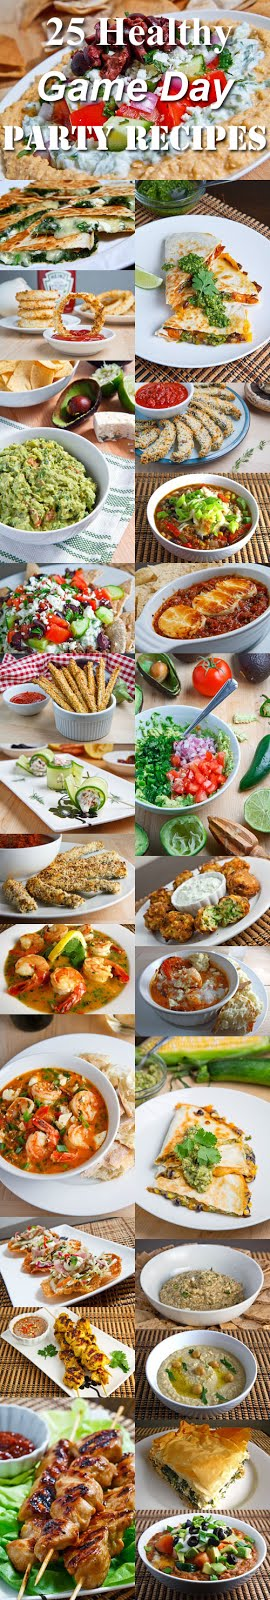 25 Healthy Game Day Party Recipes